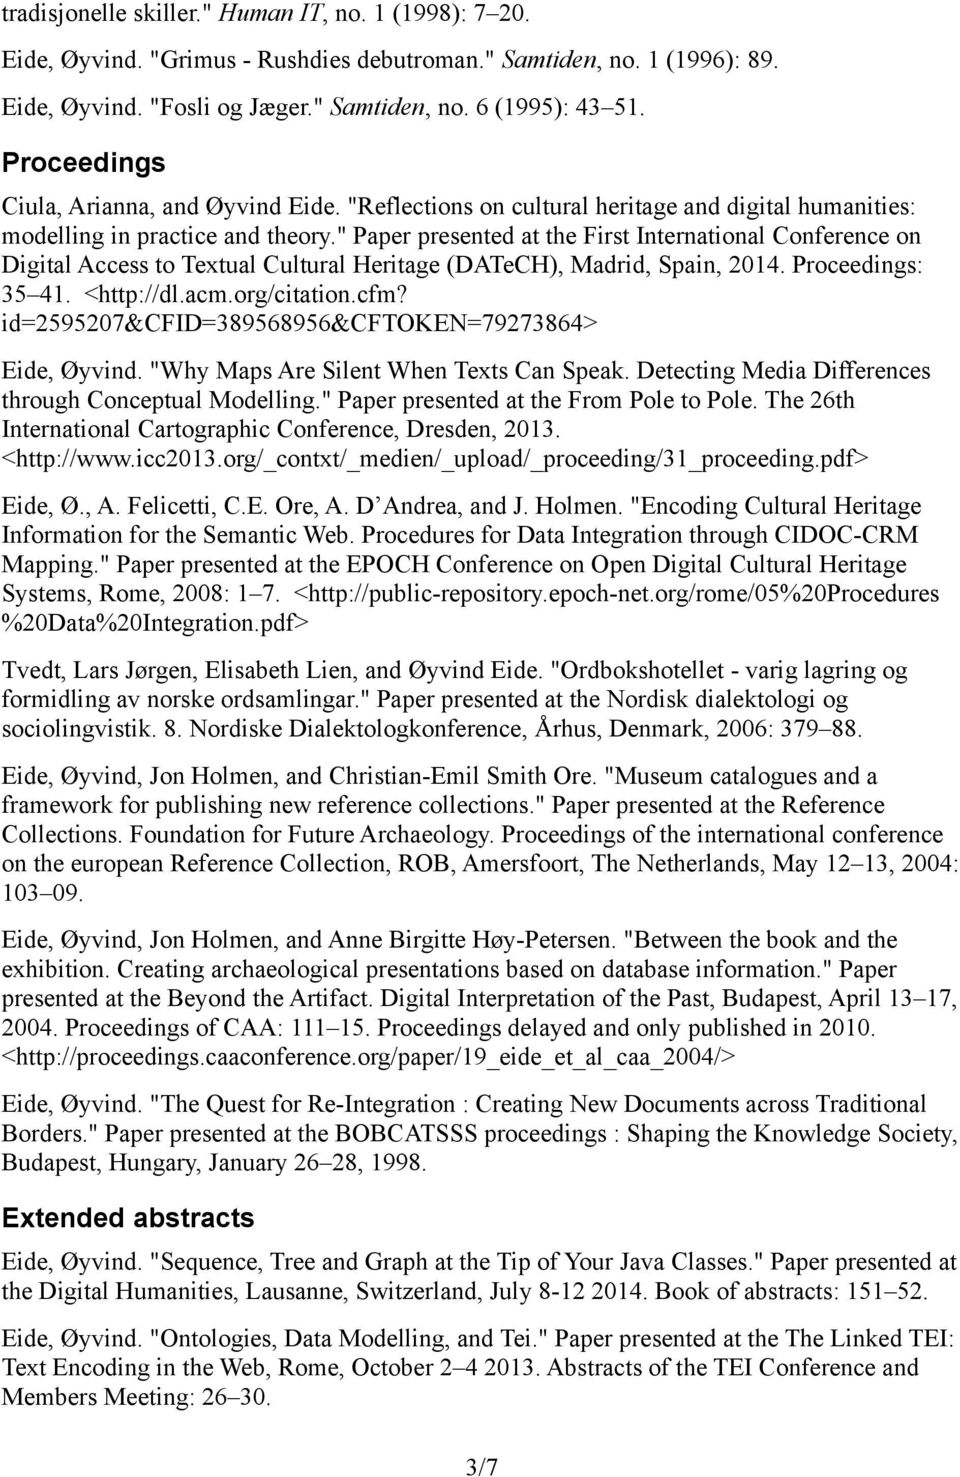 """ Paper presented at the First International Conference on Digital Access to Textual Cultural Heritage (DATeCH), Madrid, Spain, 2014. Proceedings: 35 41. <http://dl.acm.org/citation.cfm?"